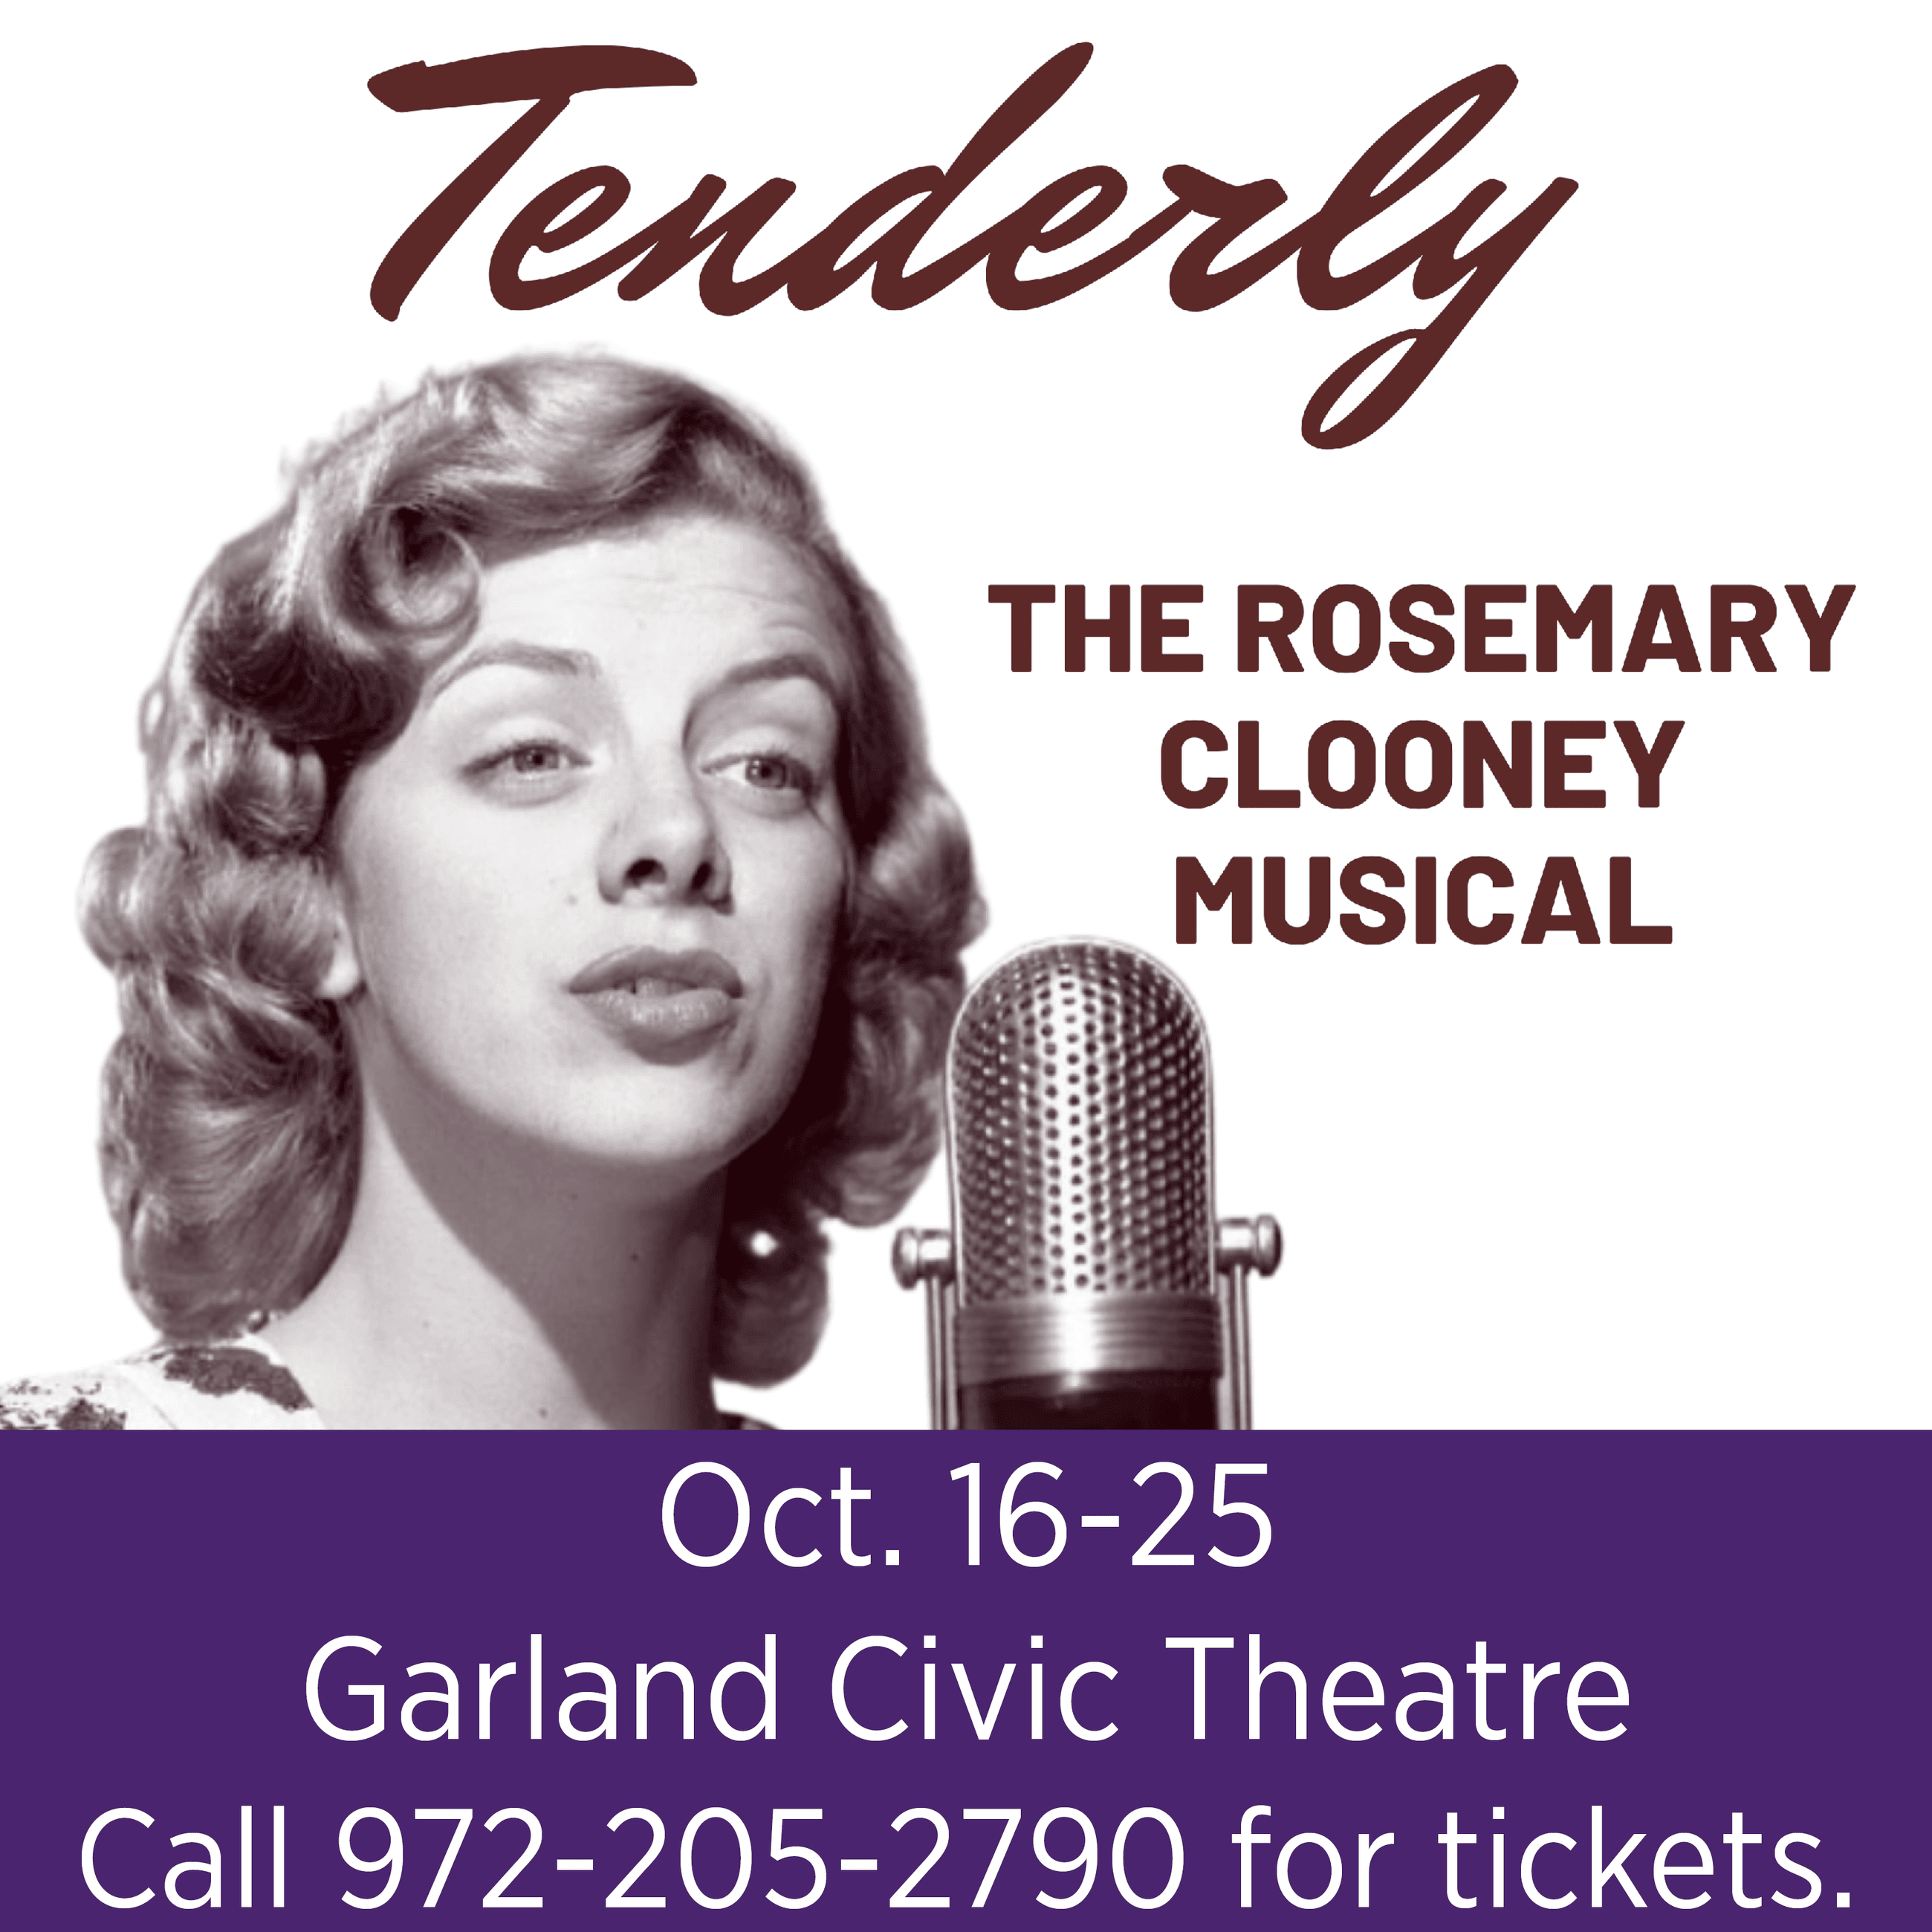 """Tenderly: The Rosemary Clooney Musical"" - For tickets, call 972-205-2790."